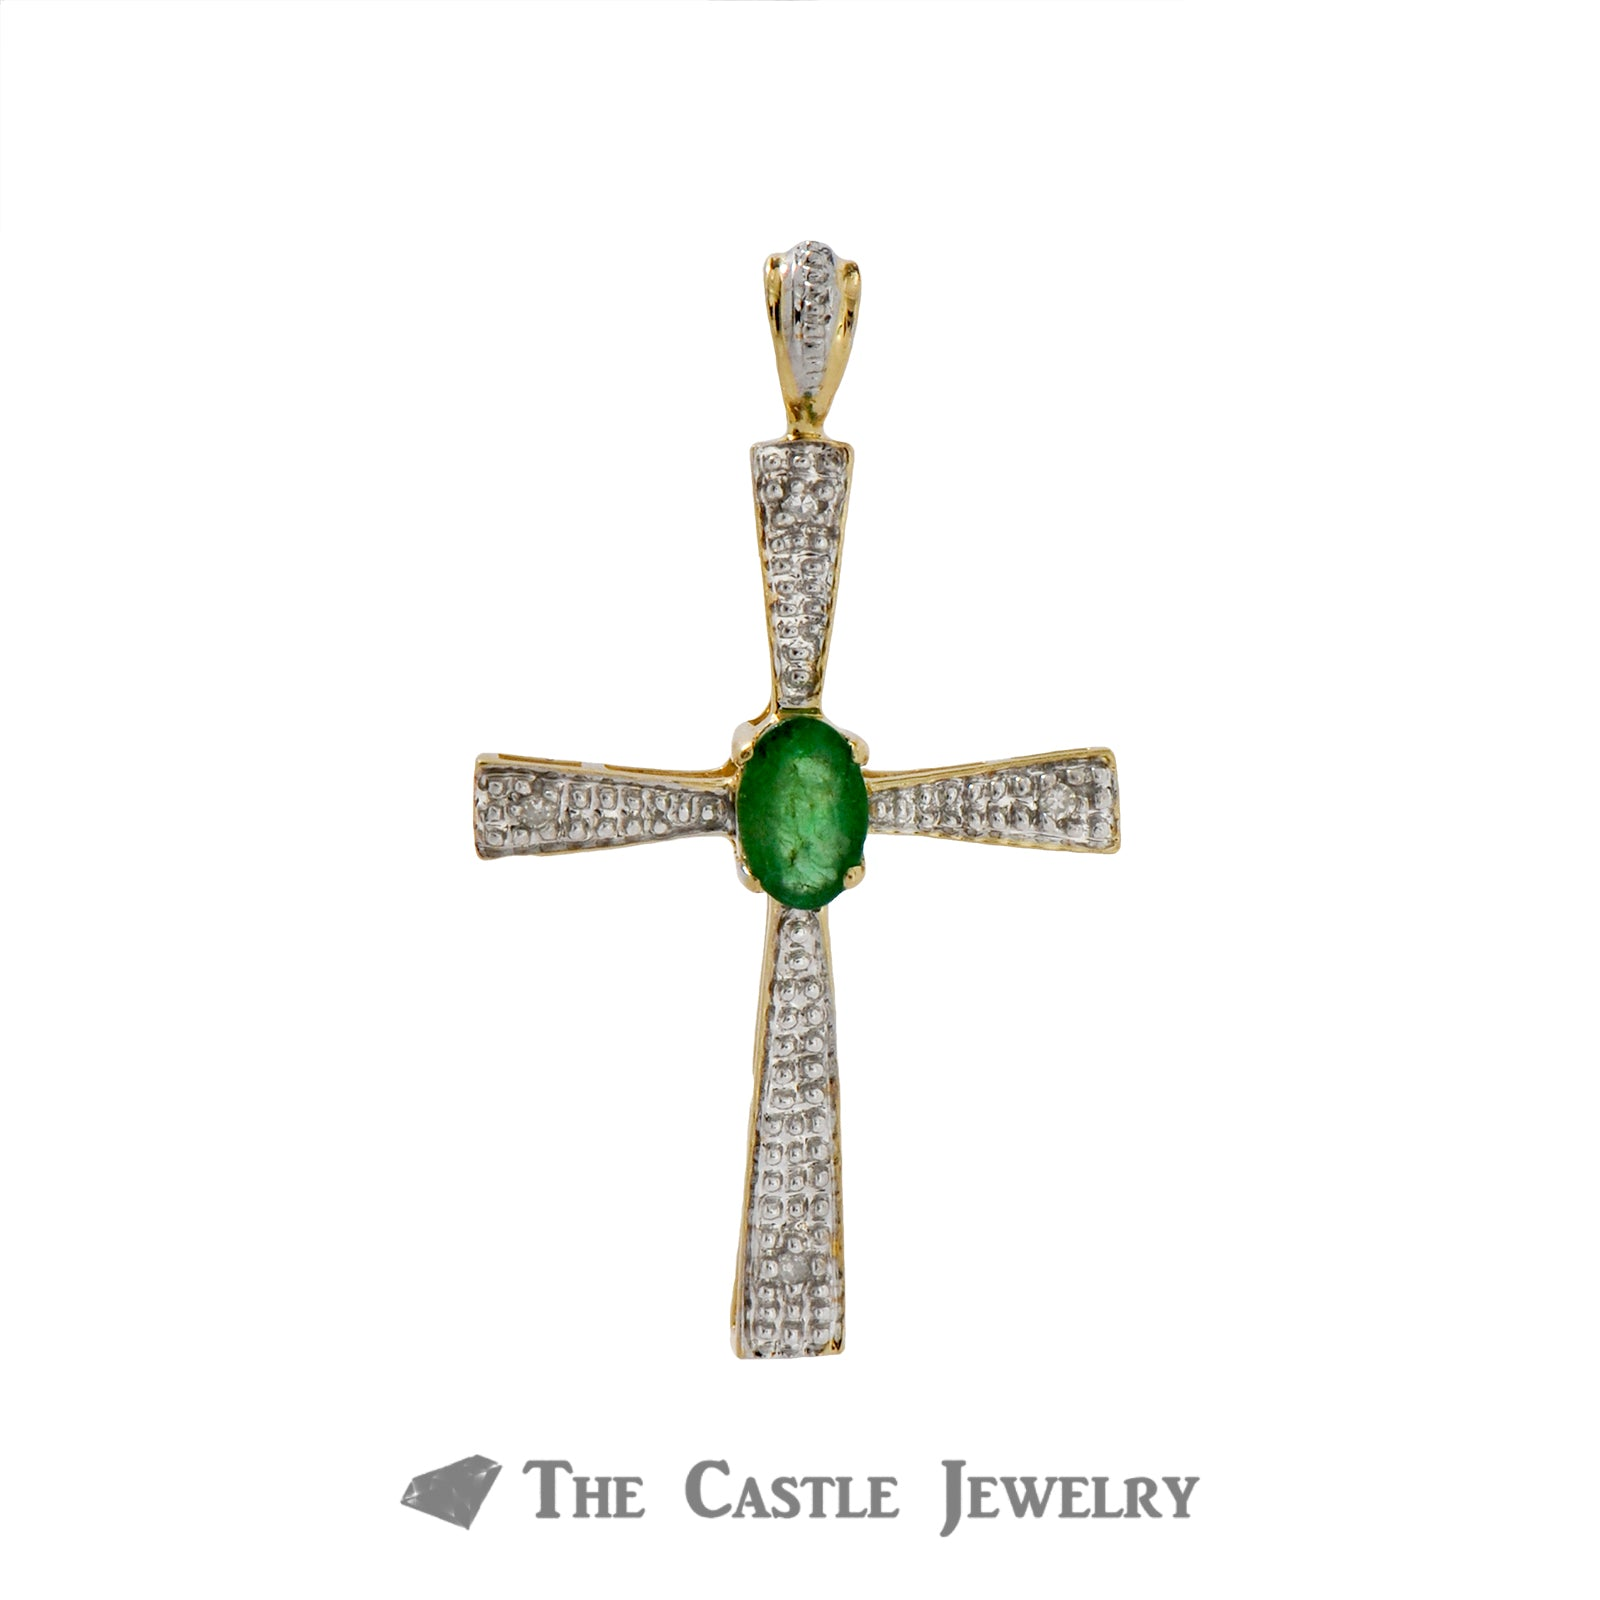 Oval Cut Emerald Cross Pendant with Diamond Accents Crafted in 14k Yellow Gold